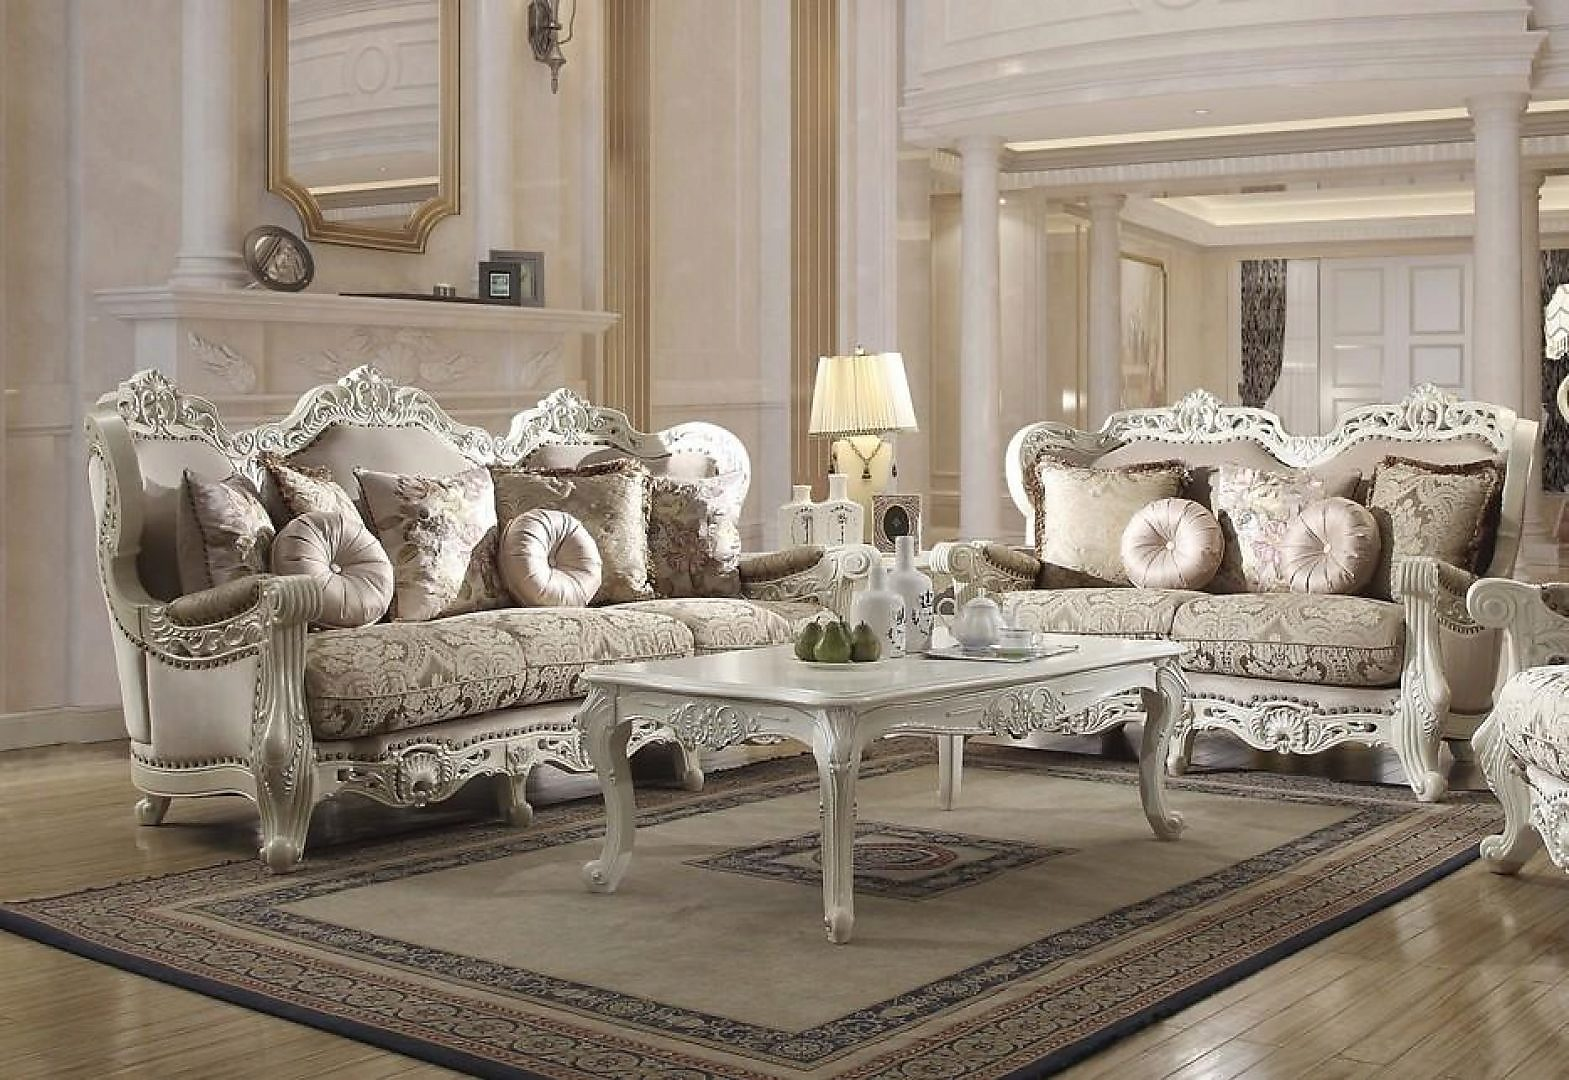 Sofa & Loveseat Set 2Pcs in Antique Ivory Fabric Traditional Homey Design HD-2657